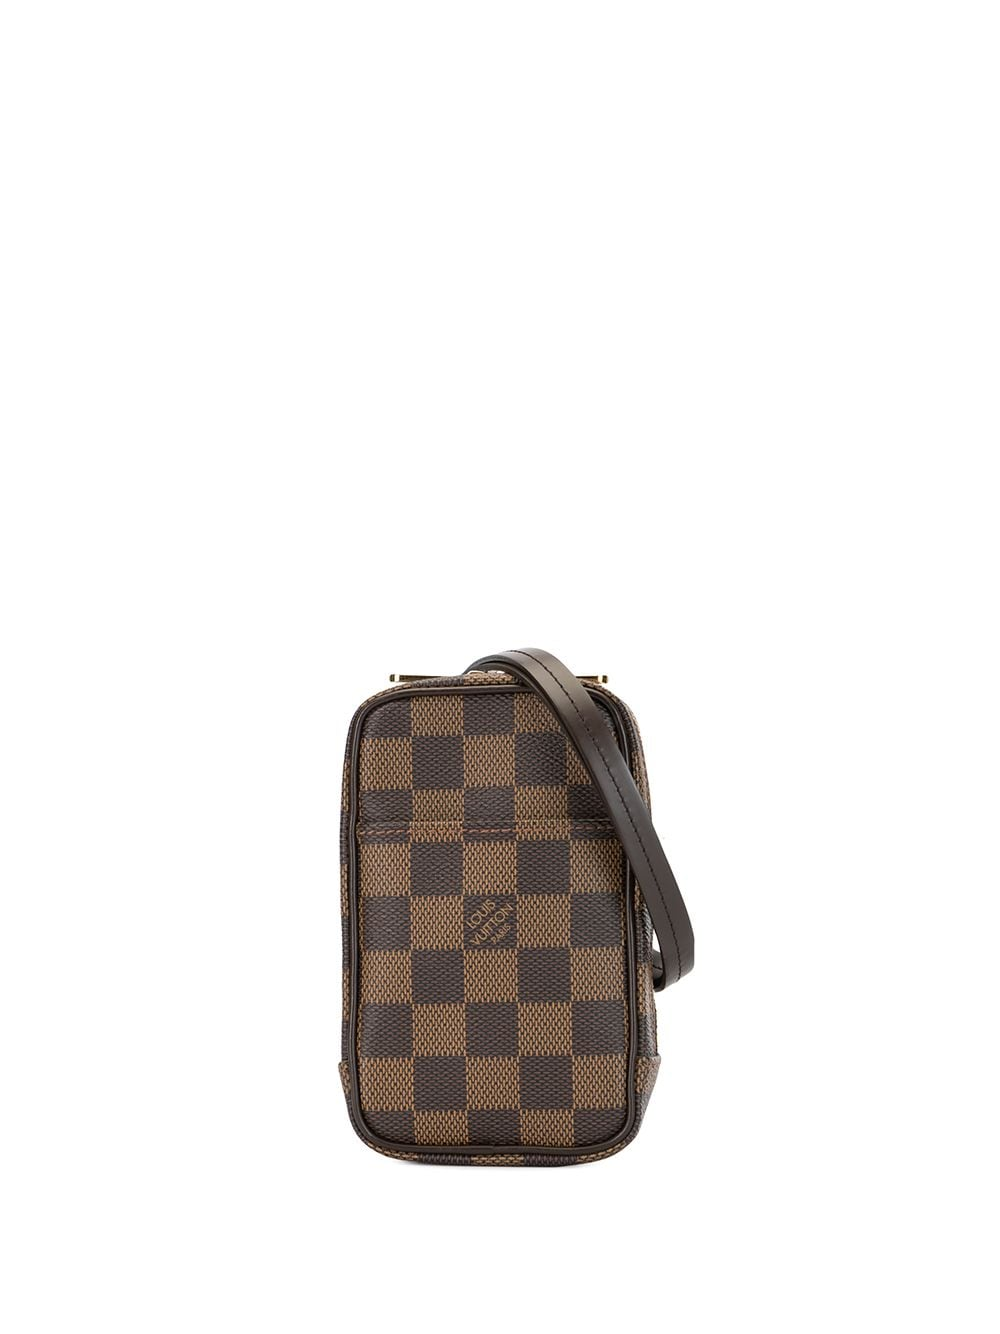 Louis Vuitton 2007 pre-owned Louis Vuitton GM Okapi Umhängetasche - Braun